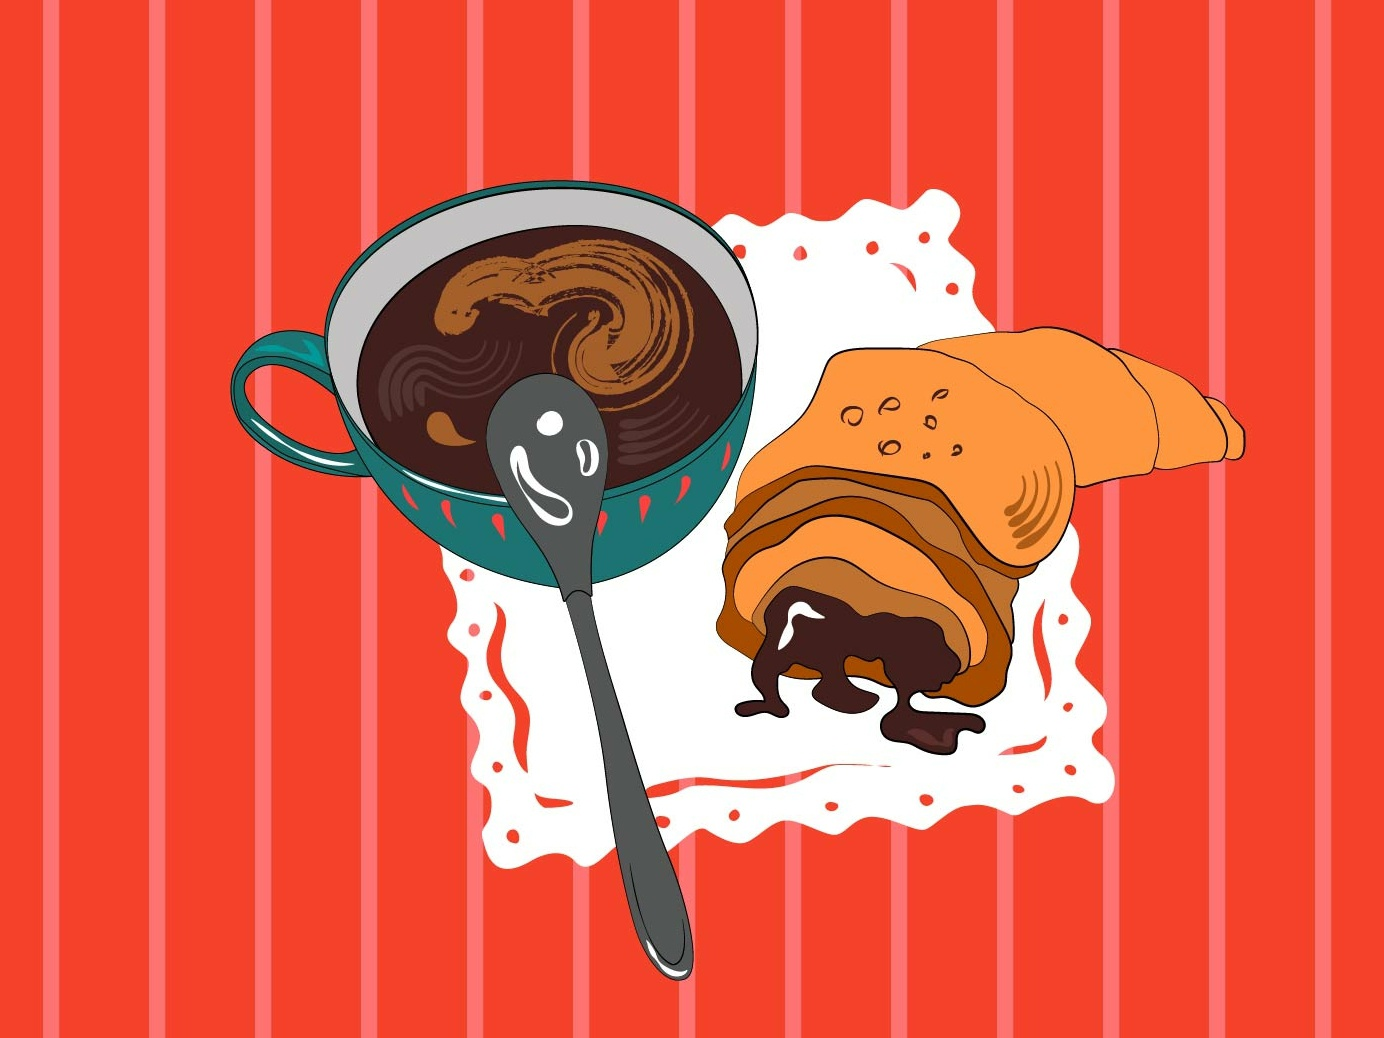 All you need is coffee... and croissant cup of tea coffee shot illustration living coral coral good day dribbble cup of coffee cup breakfast croissant